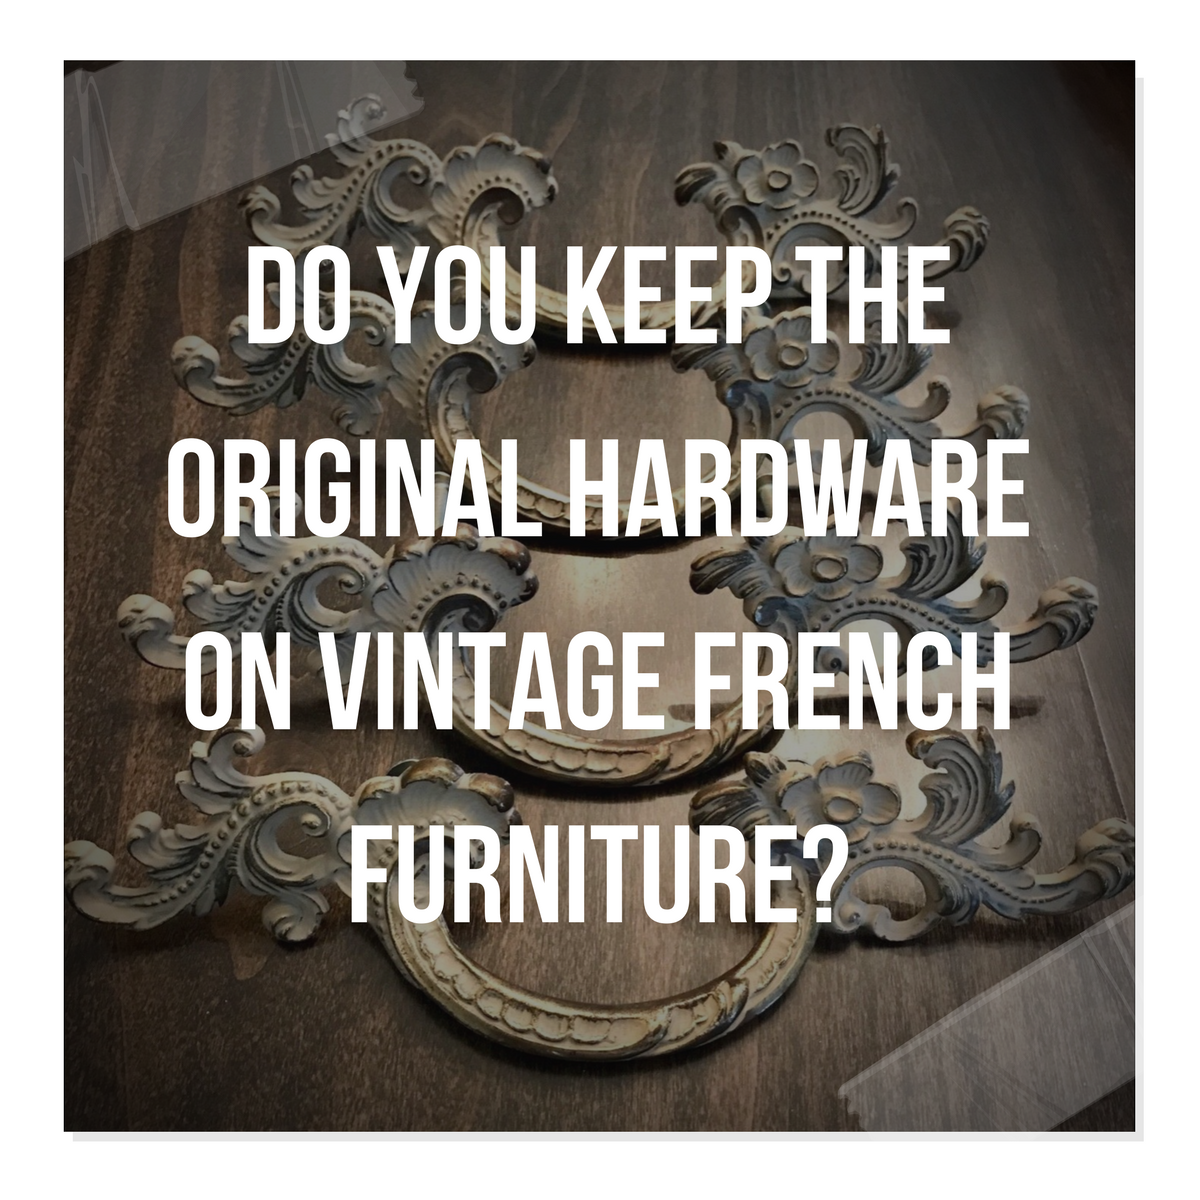 Question:  Do You Keep The Original Hardware On Vintage French Furniture?